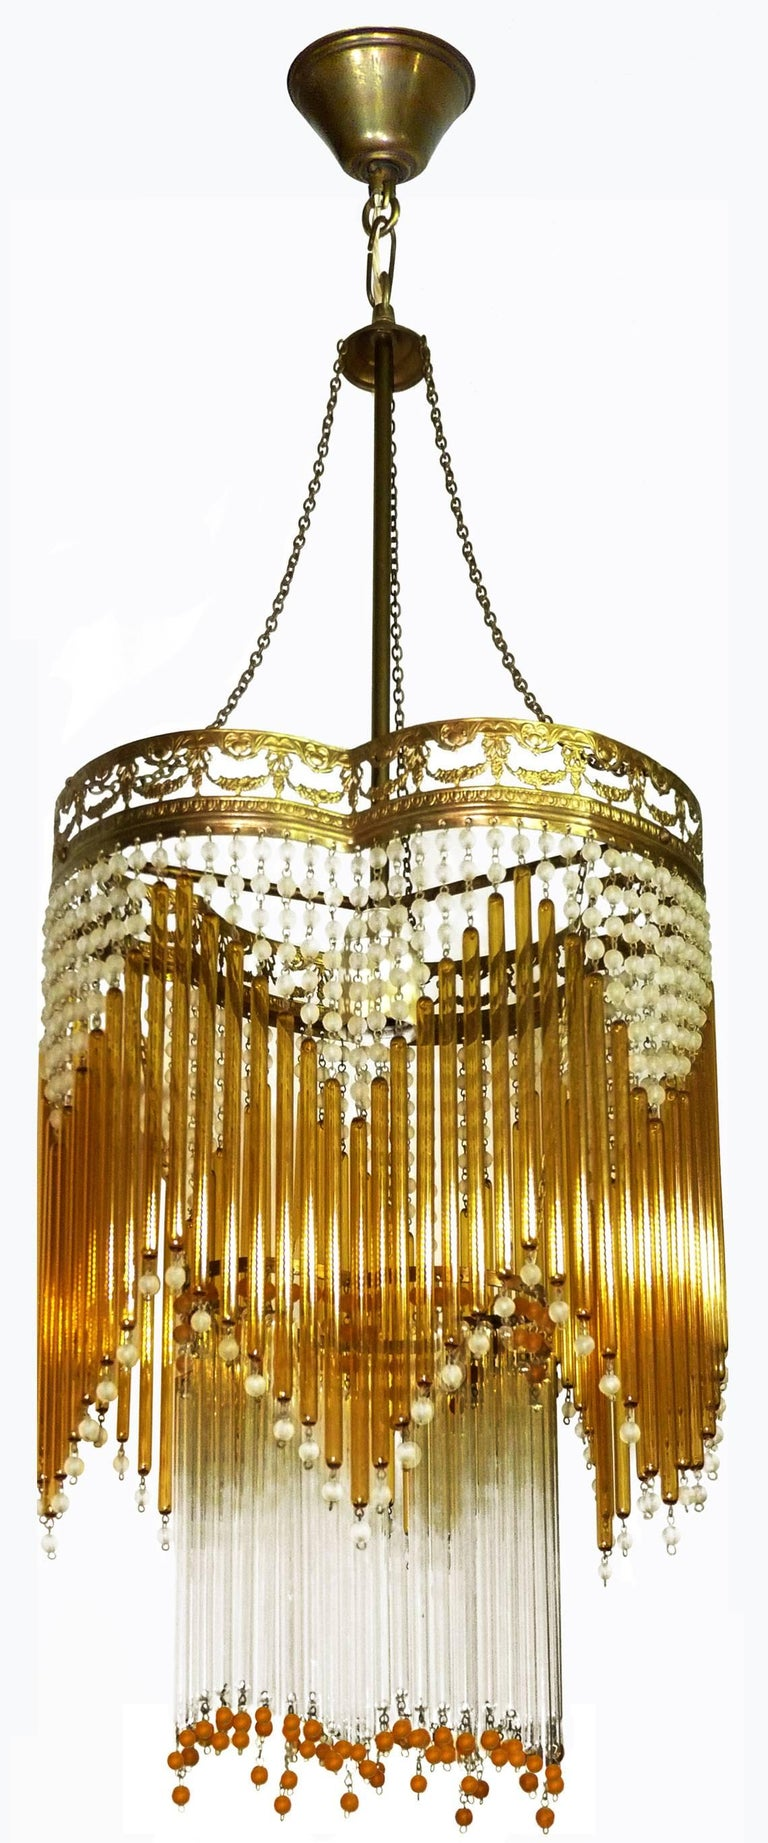 Metal Italian Art Deco/Art Nouveau Amber and Clear Beaded Glass Murano Chandelier For Sale